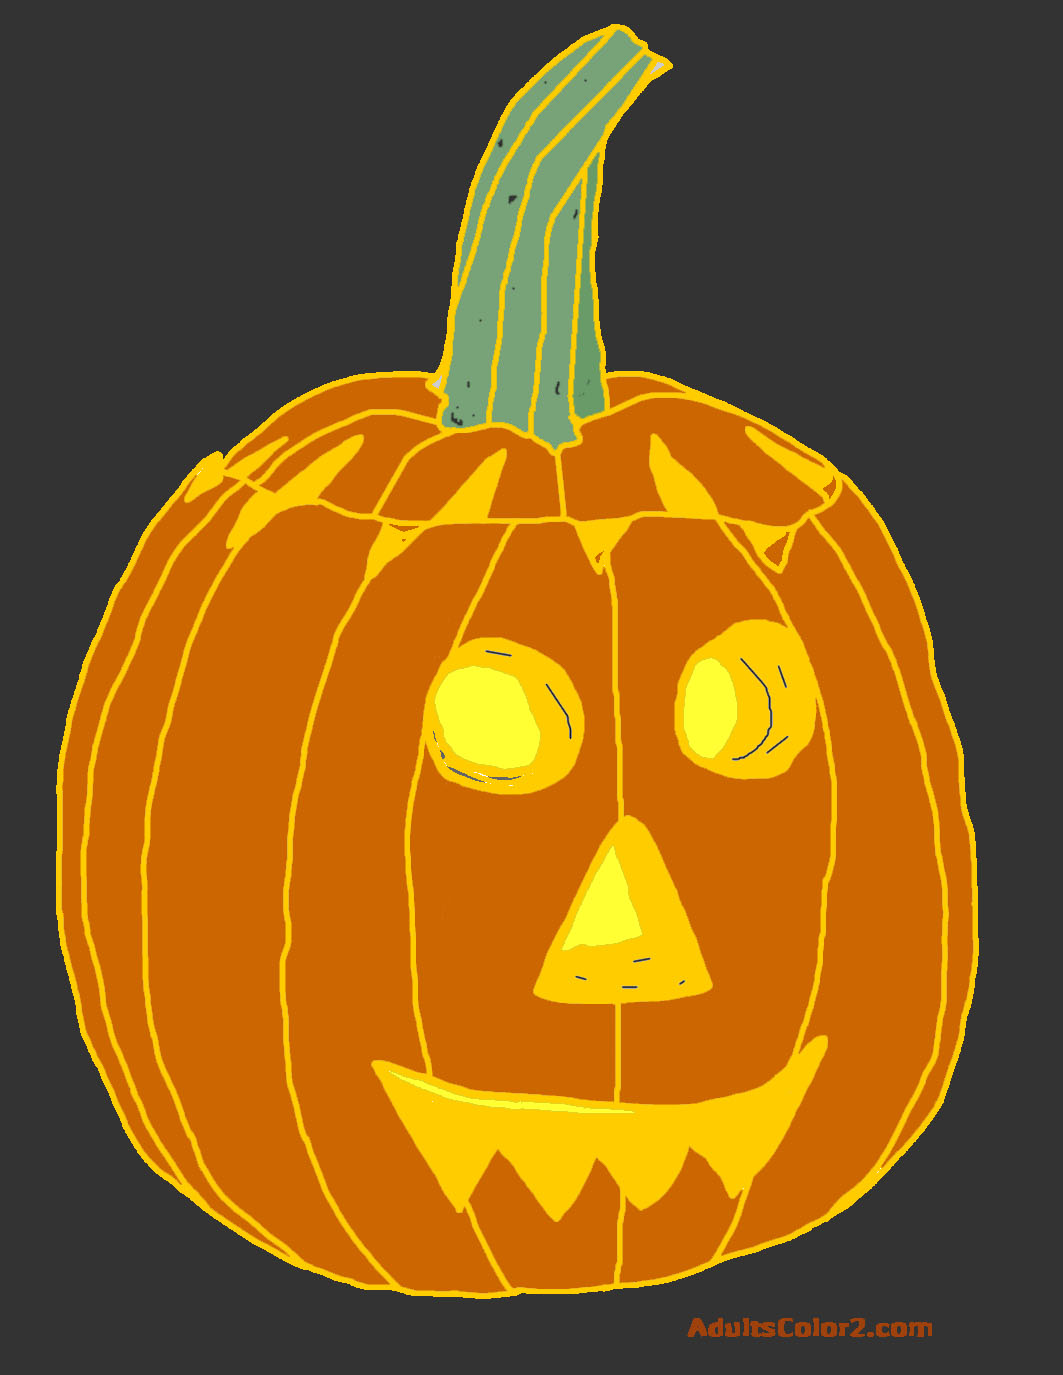 Colored in drawing of a lit Jack o' Lantern.